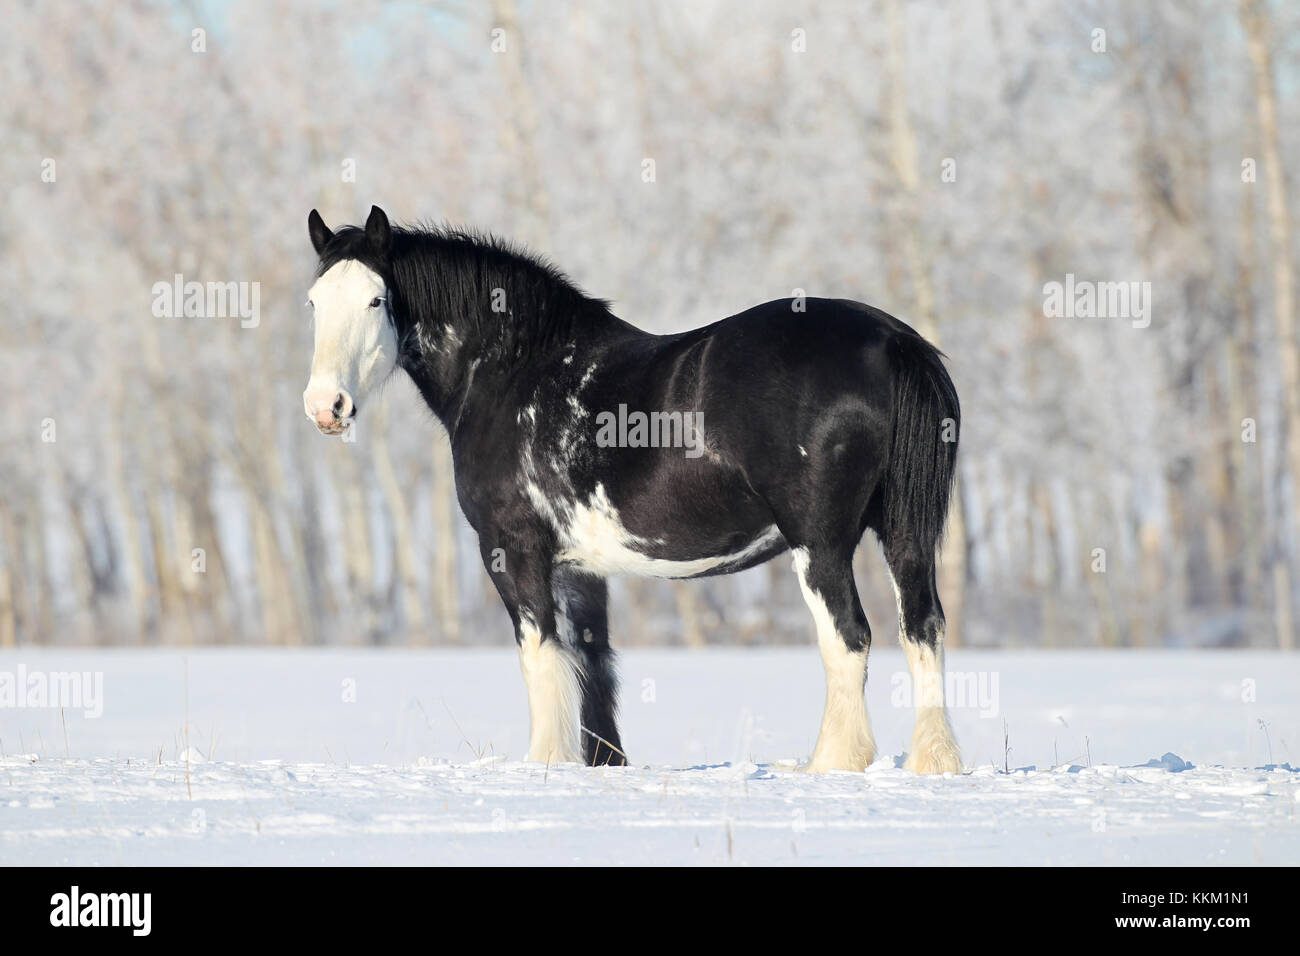 Clydesdale In The Snow Stock Photo Alamy